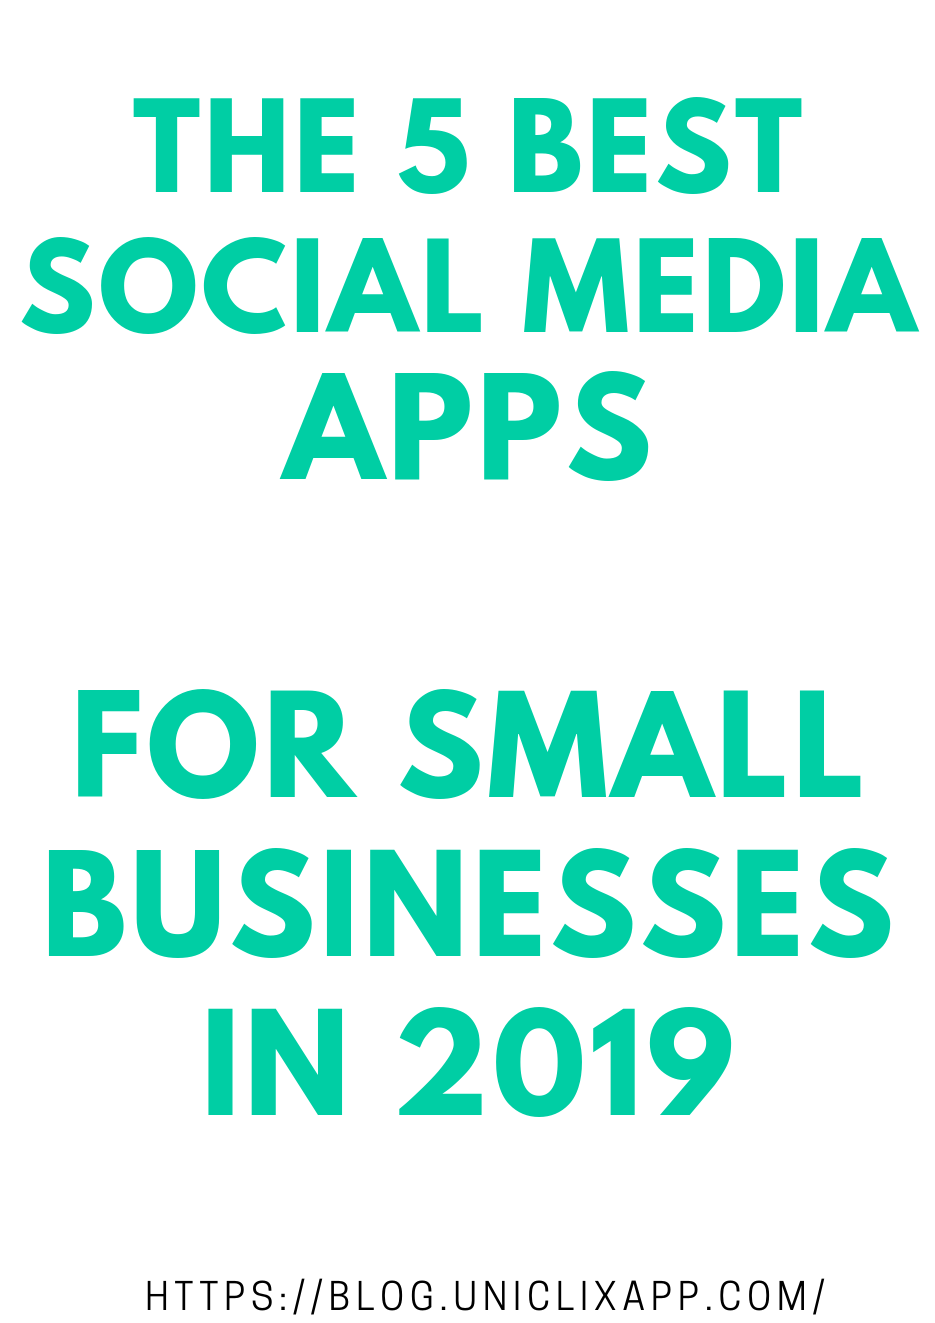 Social Media Management Tools_ The 5 Best Apps for Small Businesses in 2019